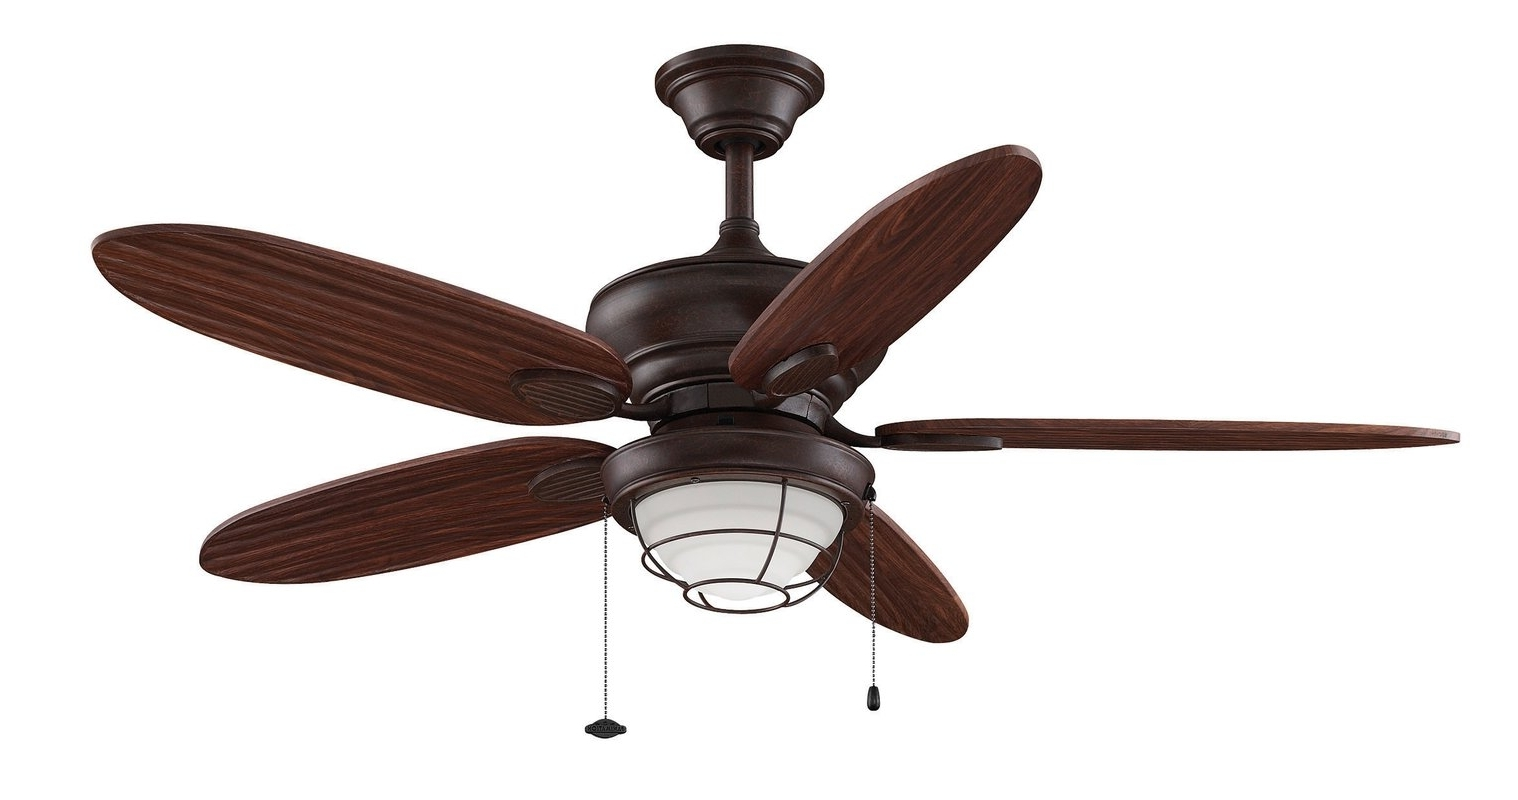 Fashionable Outdoor Ceiling Fans C Wayfair Ceiling Fans With Lights Simple Throughout Wayfair Outdoor Ceiling Fans (View 6 of 20)